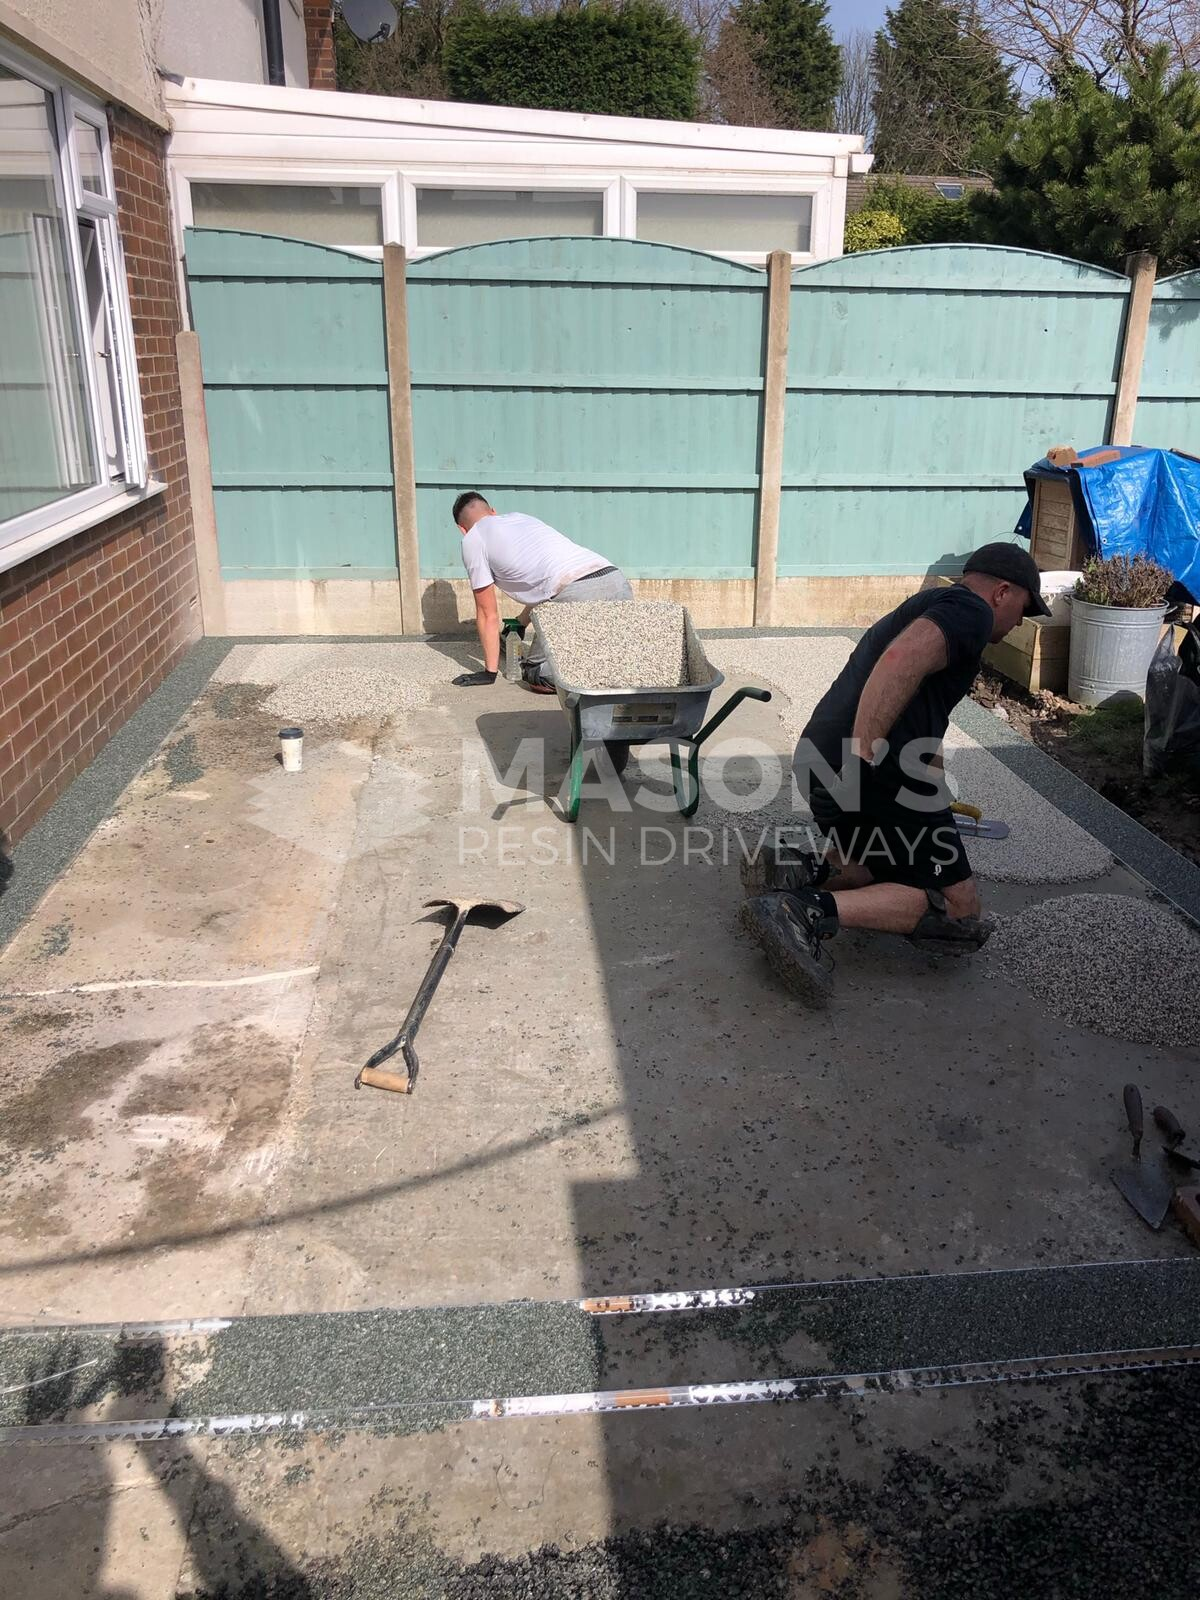 asp workers on resin grey driveway